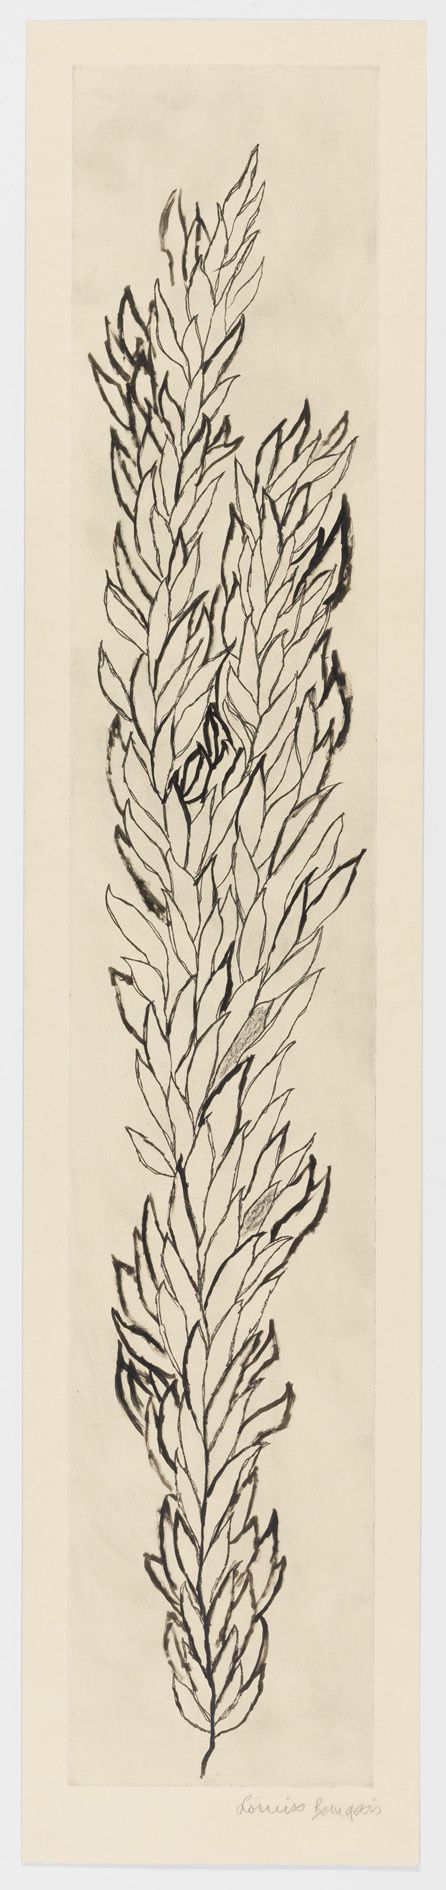 Louise bourgeois leaves art pinterest louise